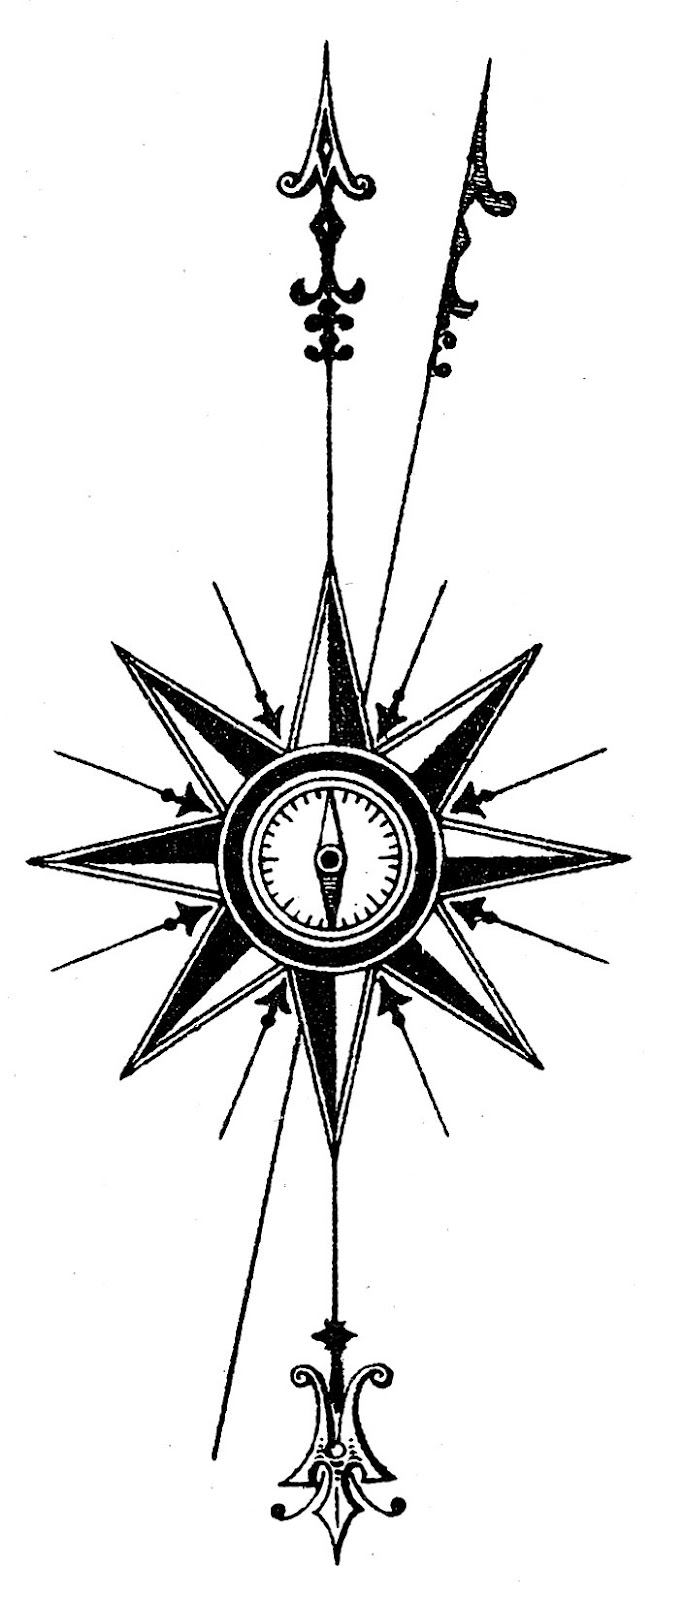 Old Map Compass Rose - ClipArt Best Antique Compass Rose Tattoo